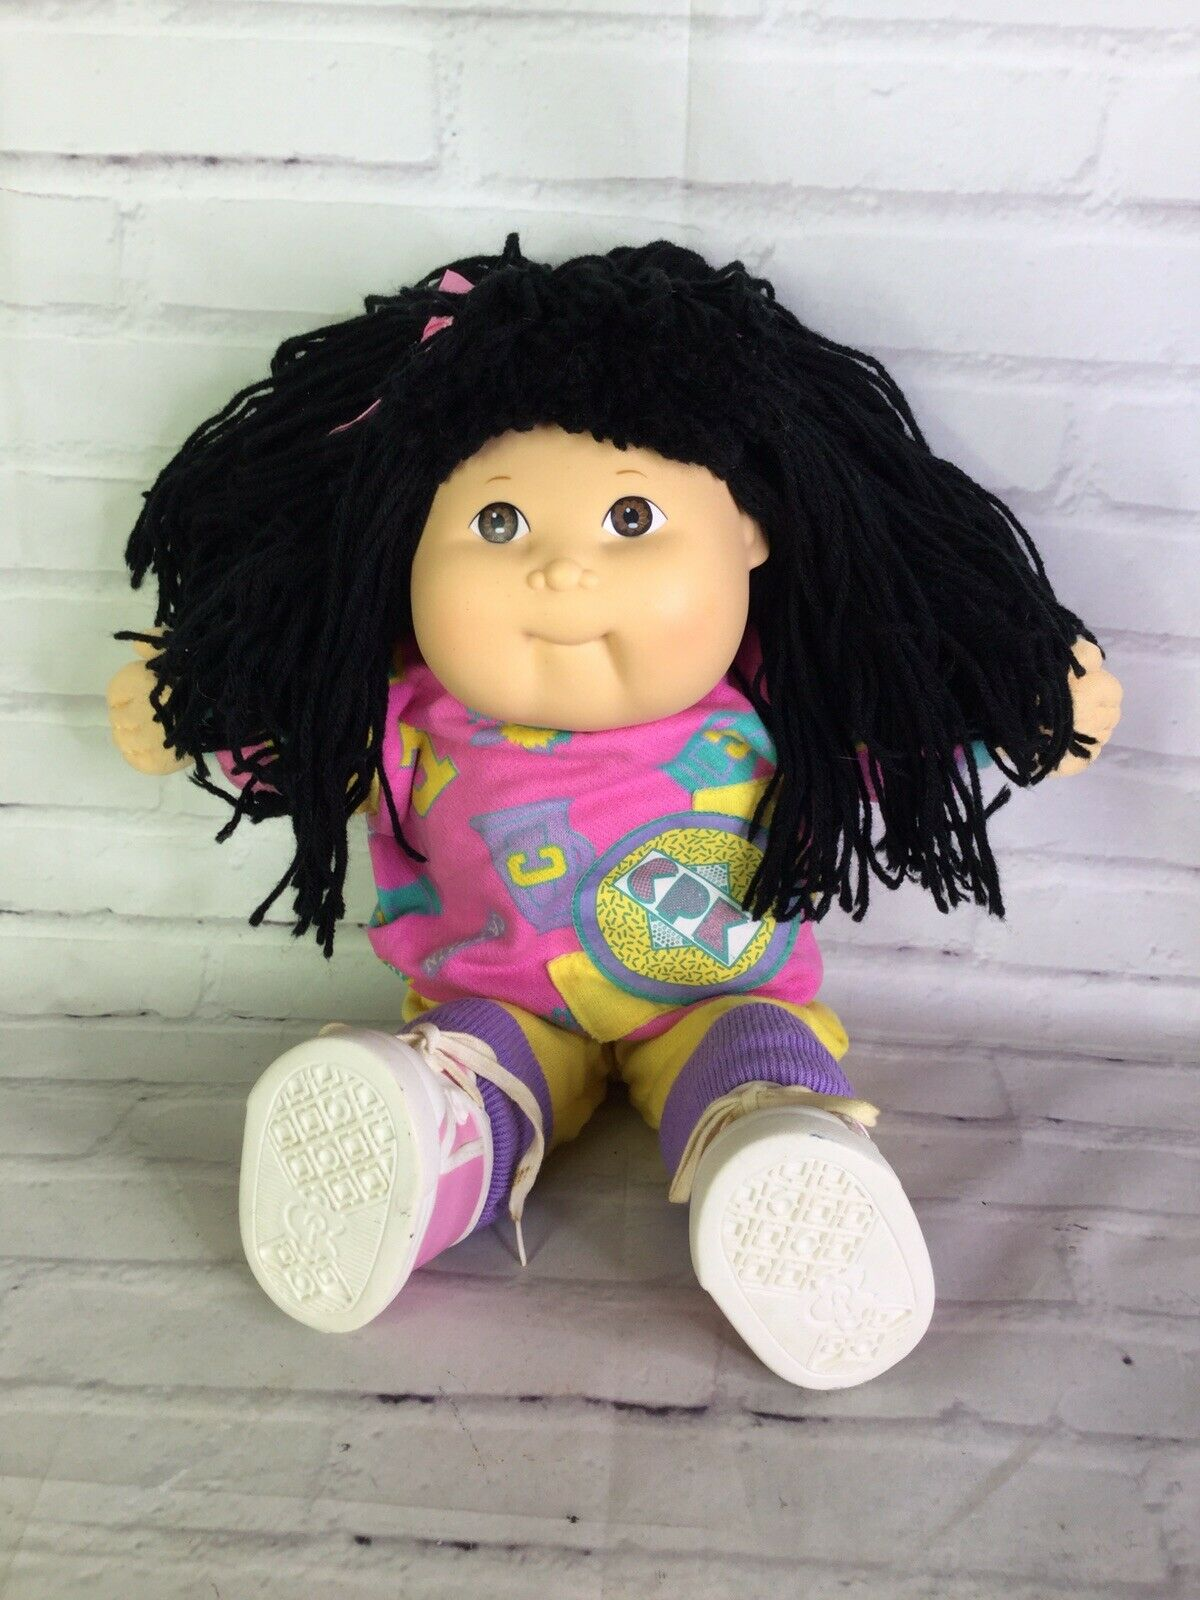 Cabbage Patch Kids Babies Asian Boy With Black Hair for sale online | eBay